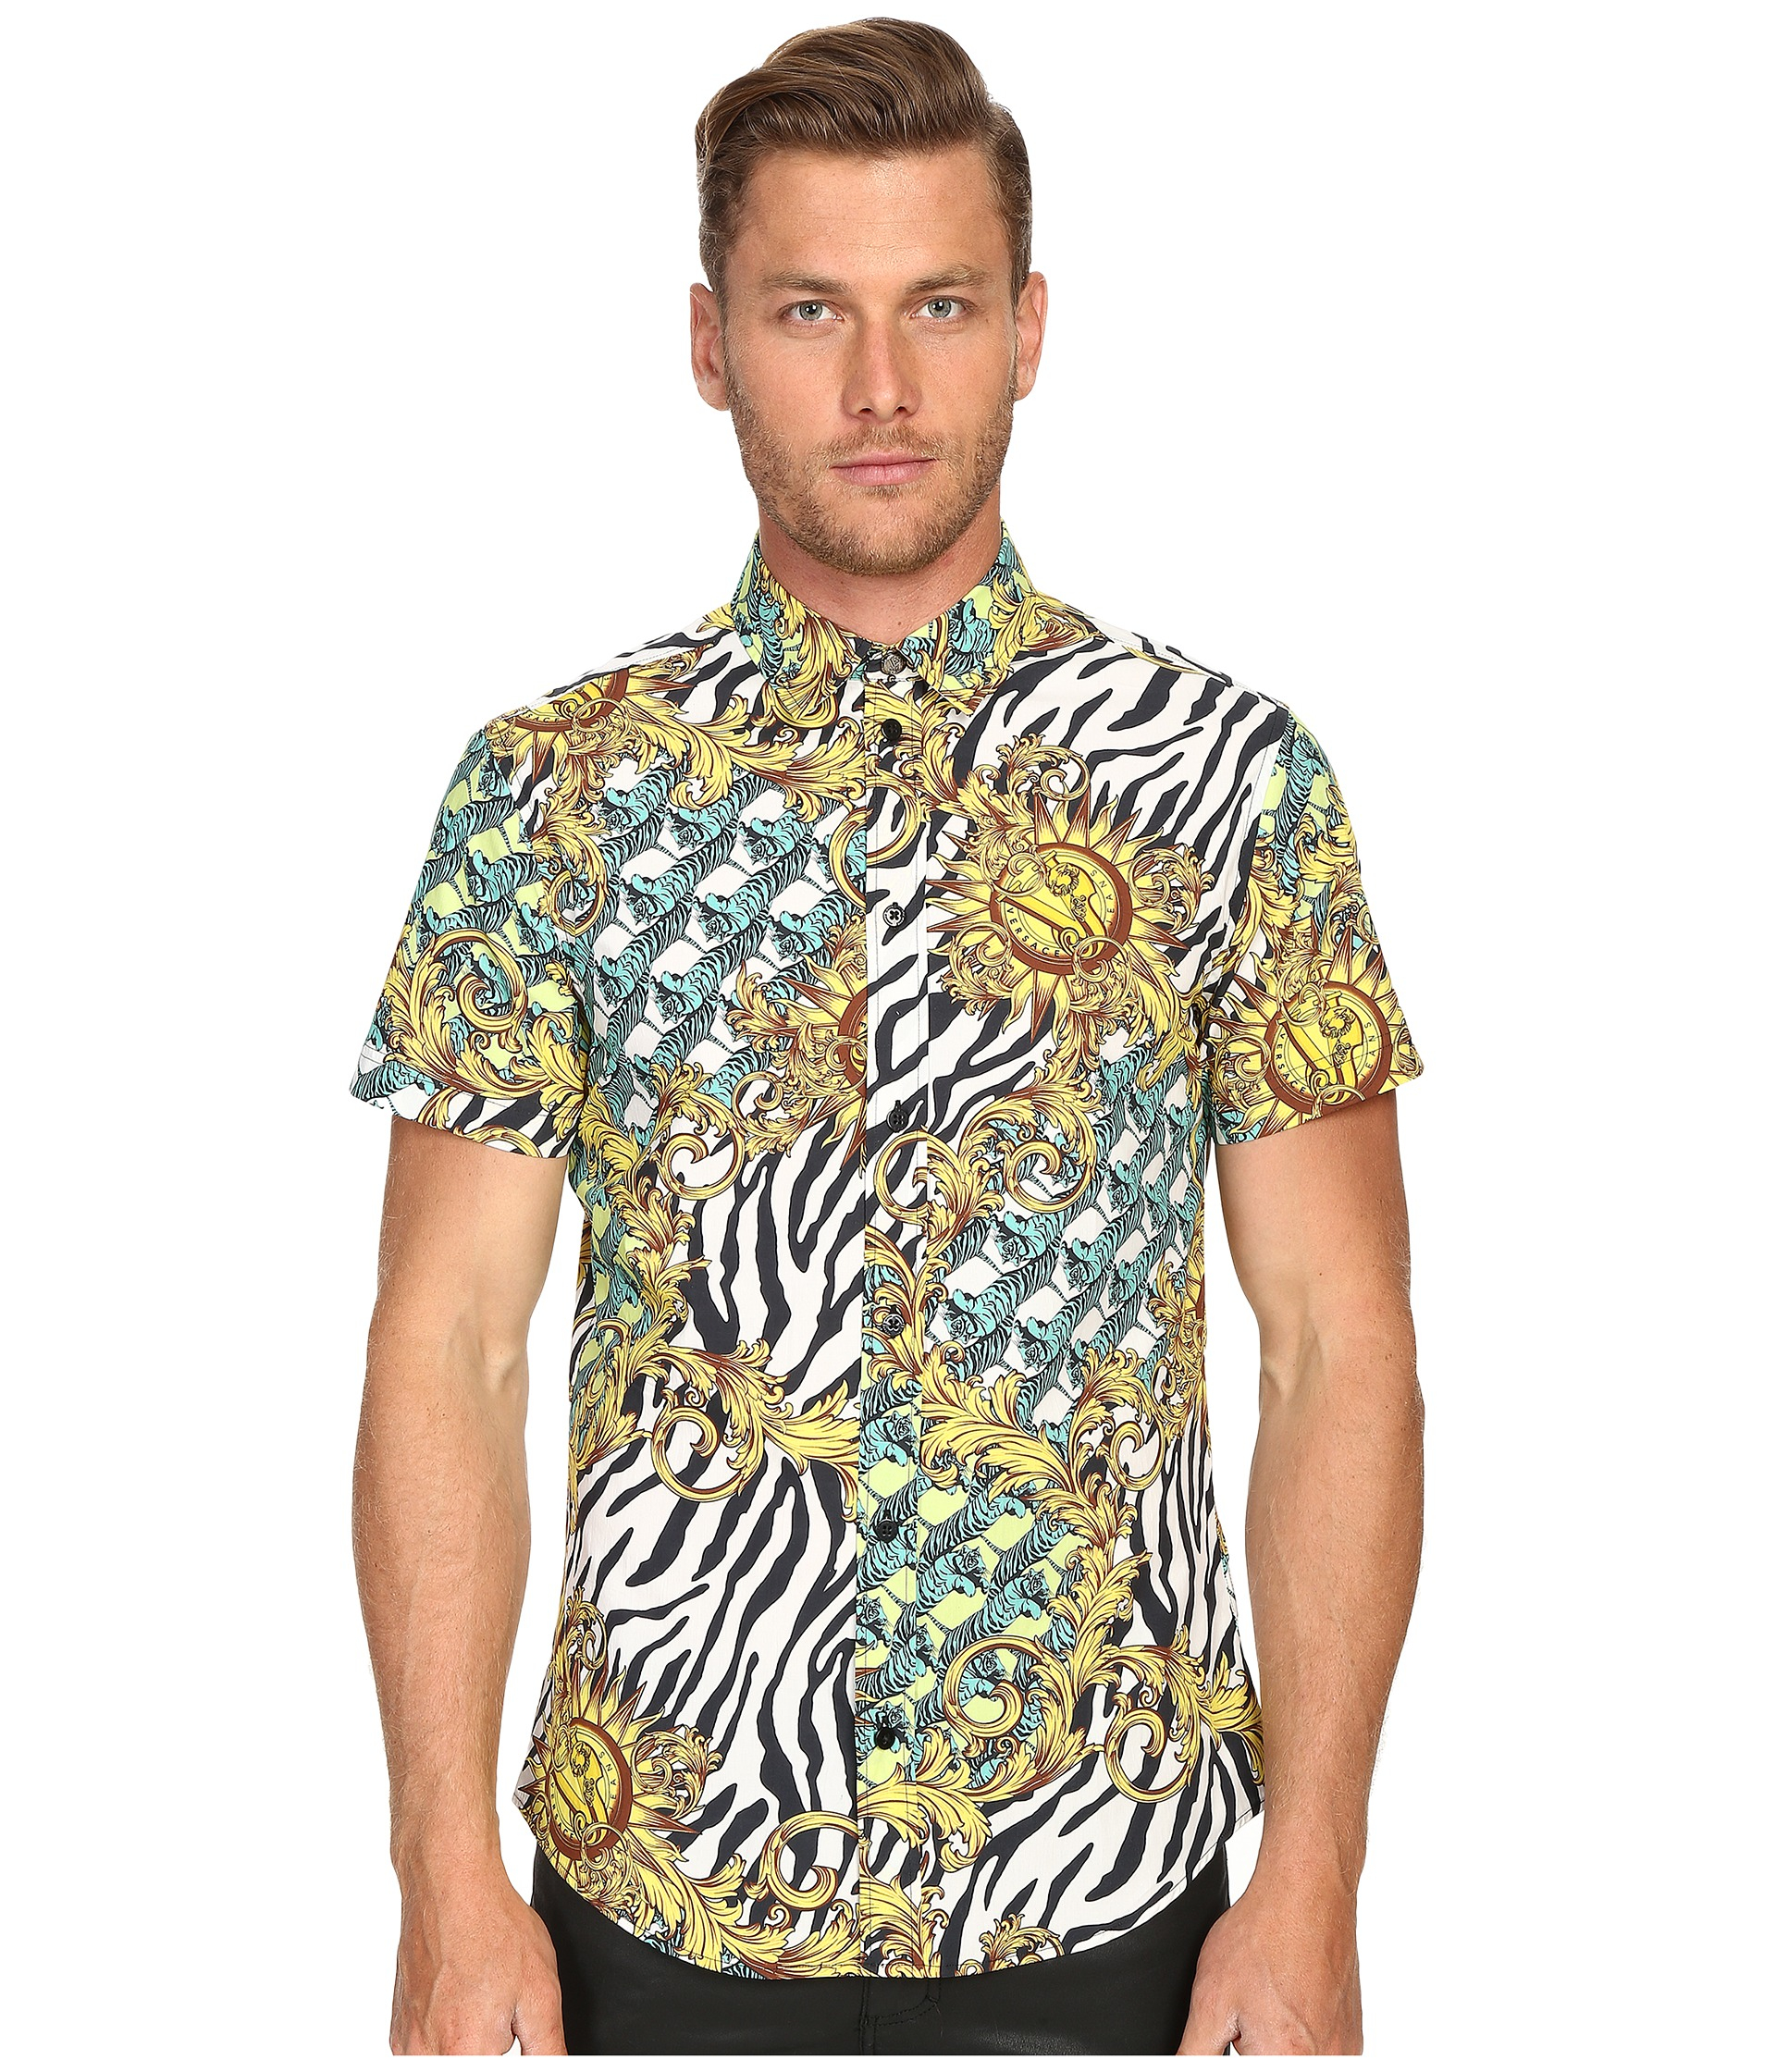 6da84ef8 Versace Jeans All Over Baroque Tiger Print Short Sleeve Button Up ...